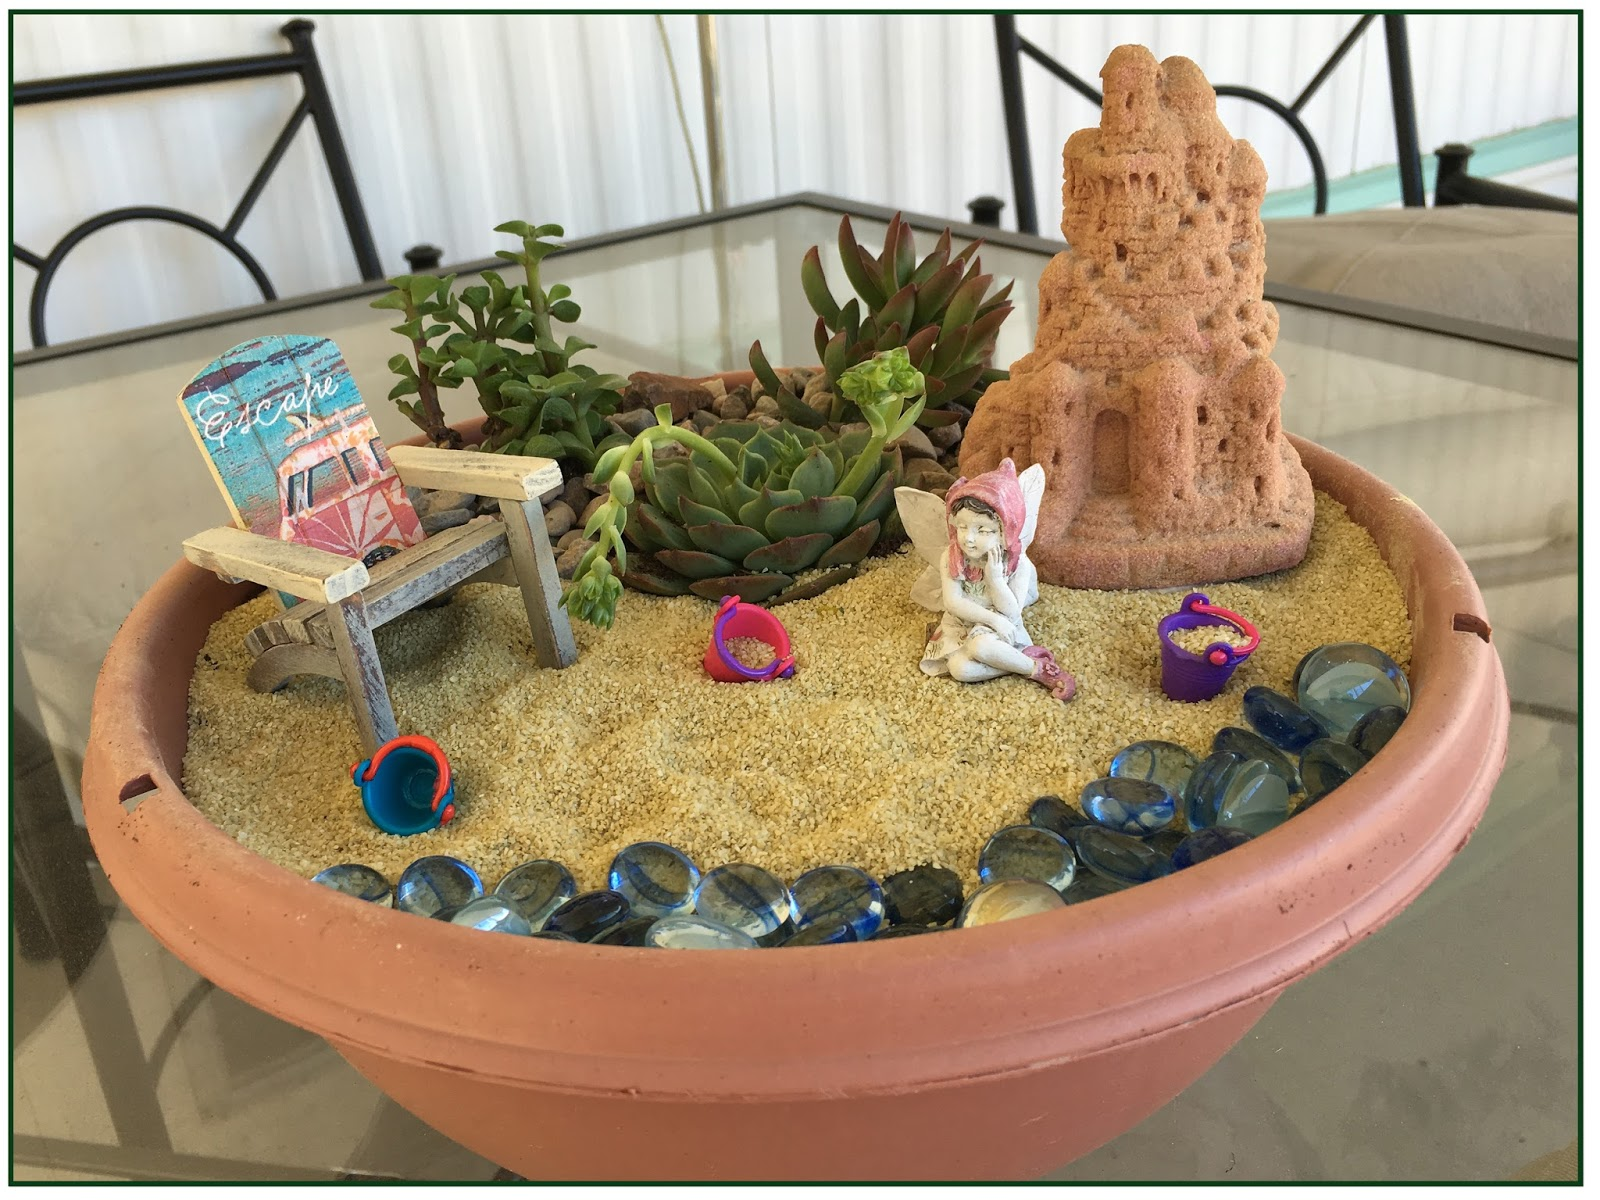 So We Had Fun The Other Day Creating An AZ Themed Beach Scene. Yes, There  Are Lakes Here With Beaches Midst The Desert Scenery!